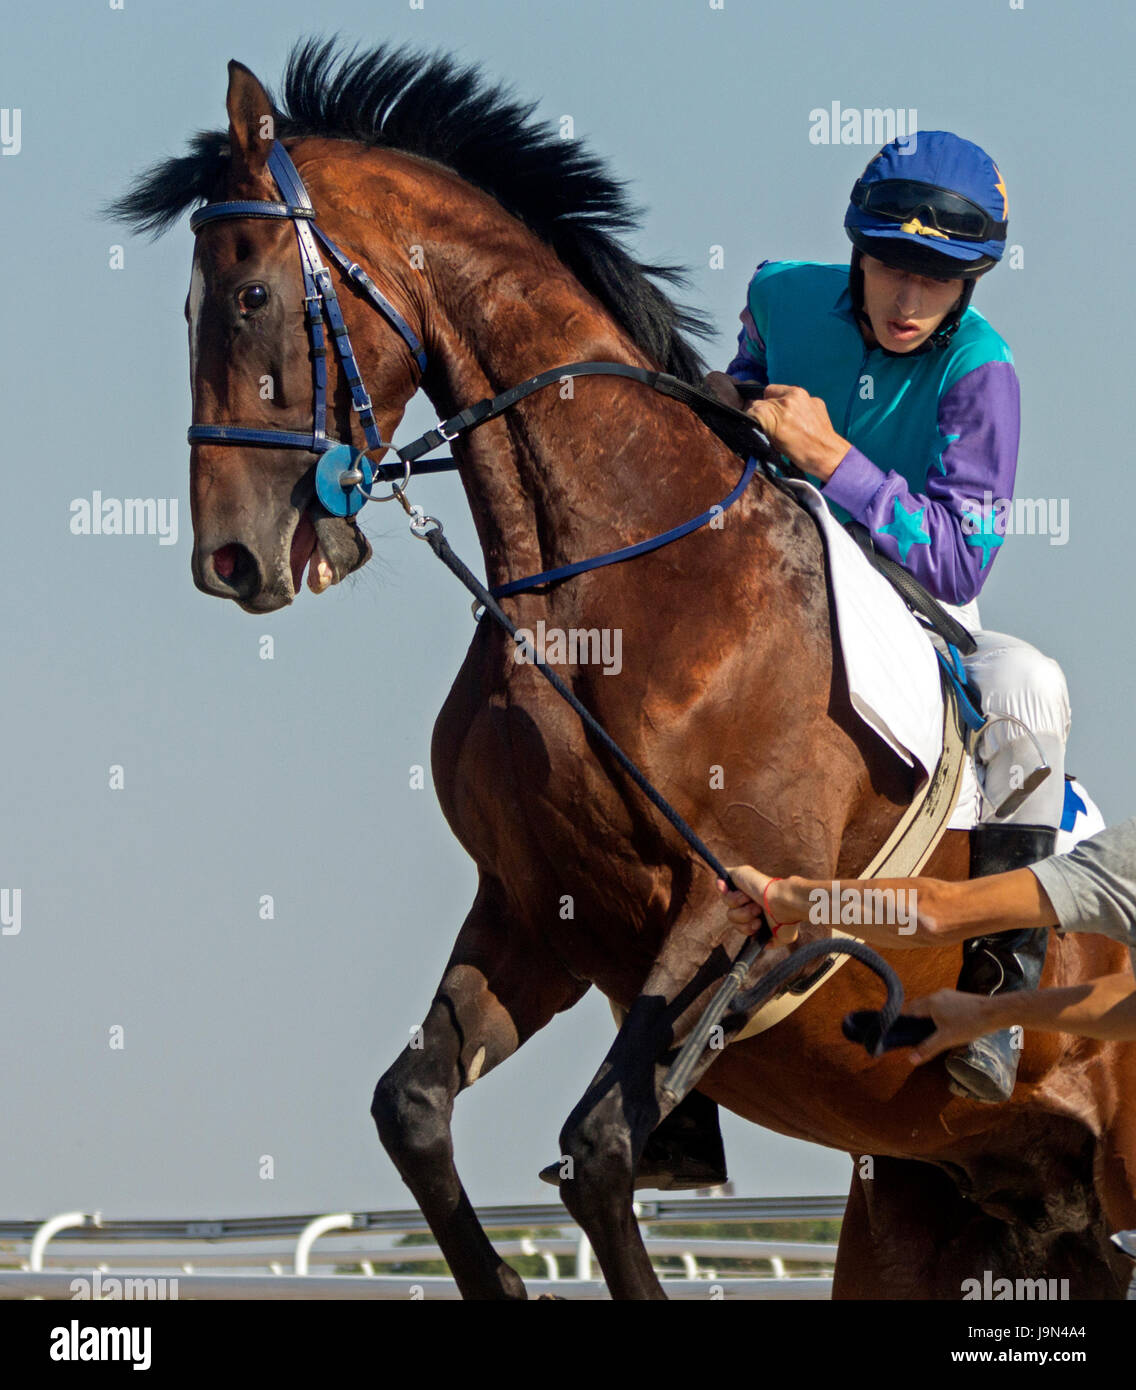 Before horse  trying to reset jockey before the start racing - Stock Image